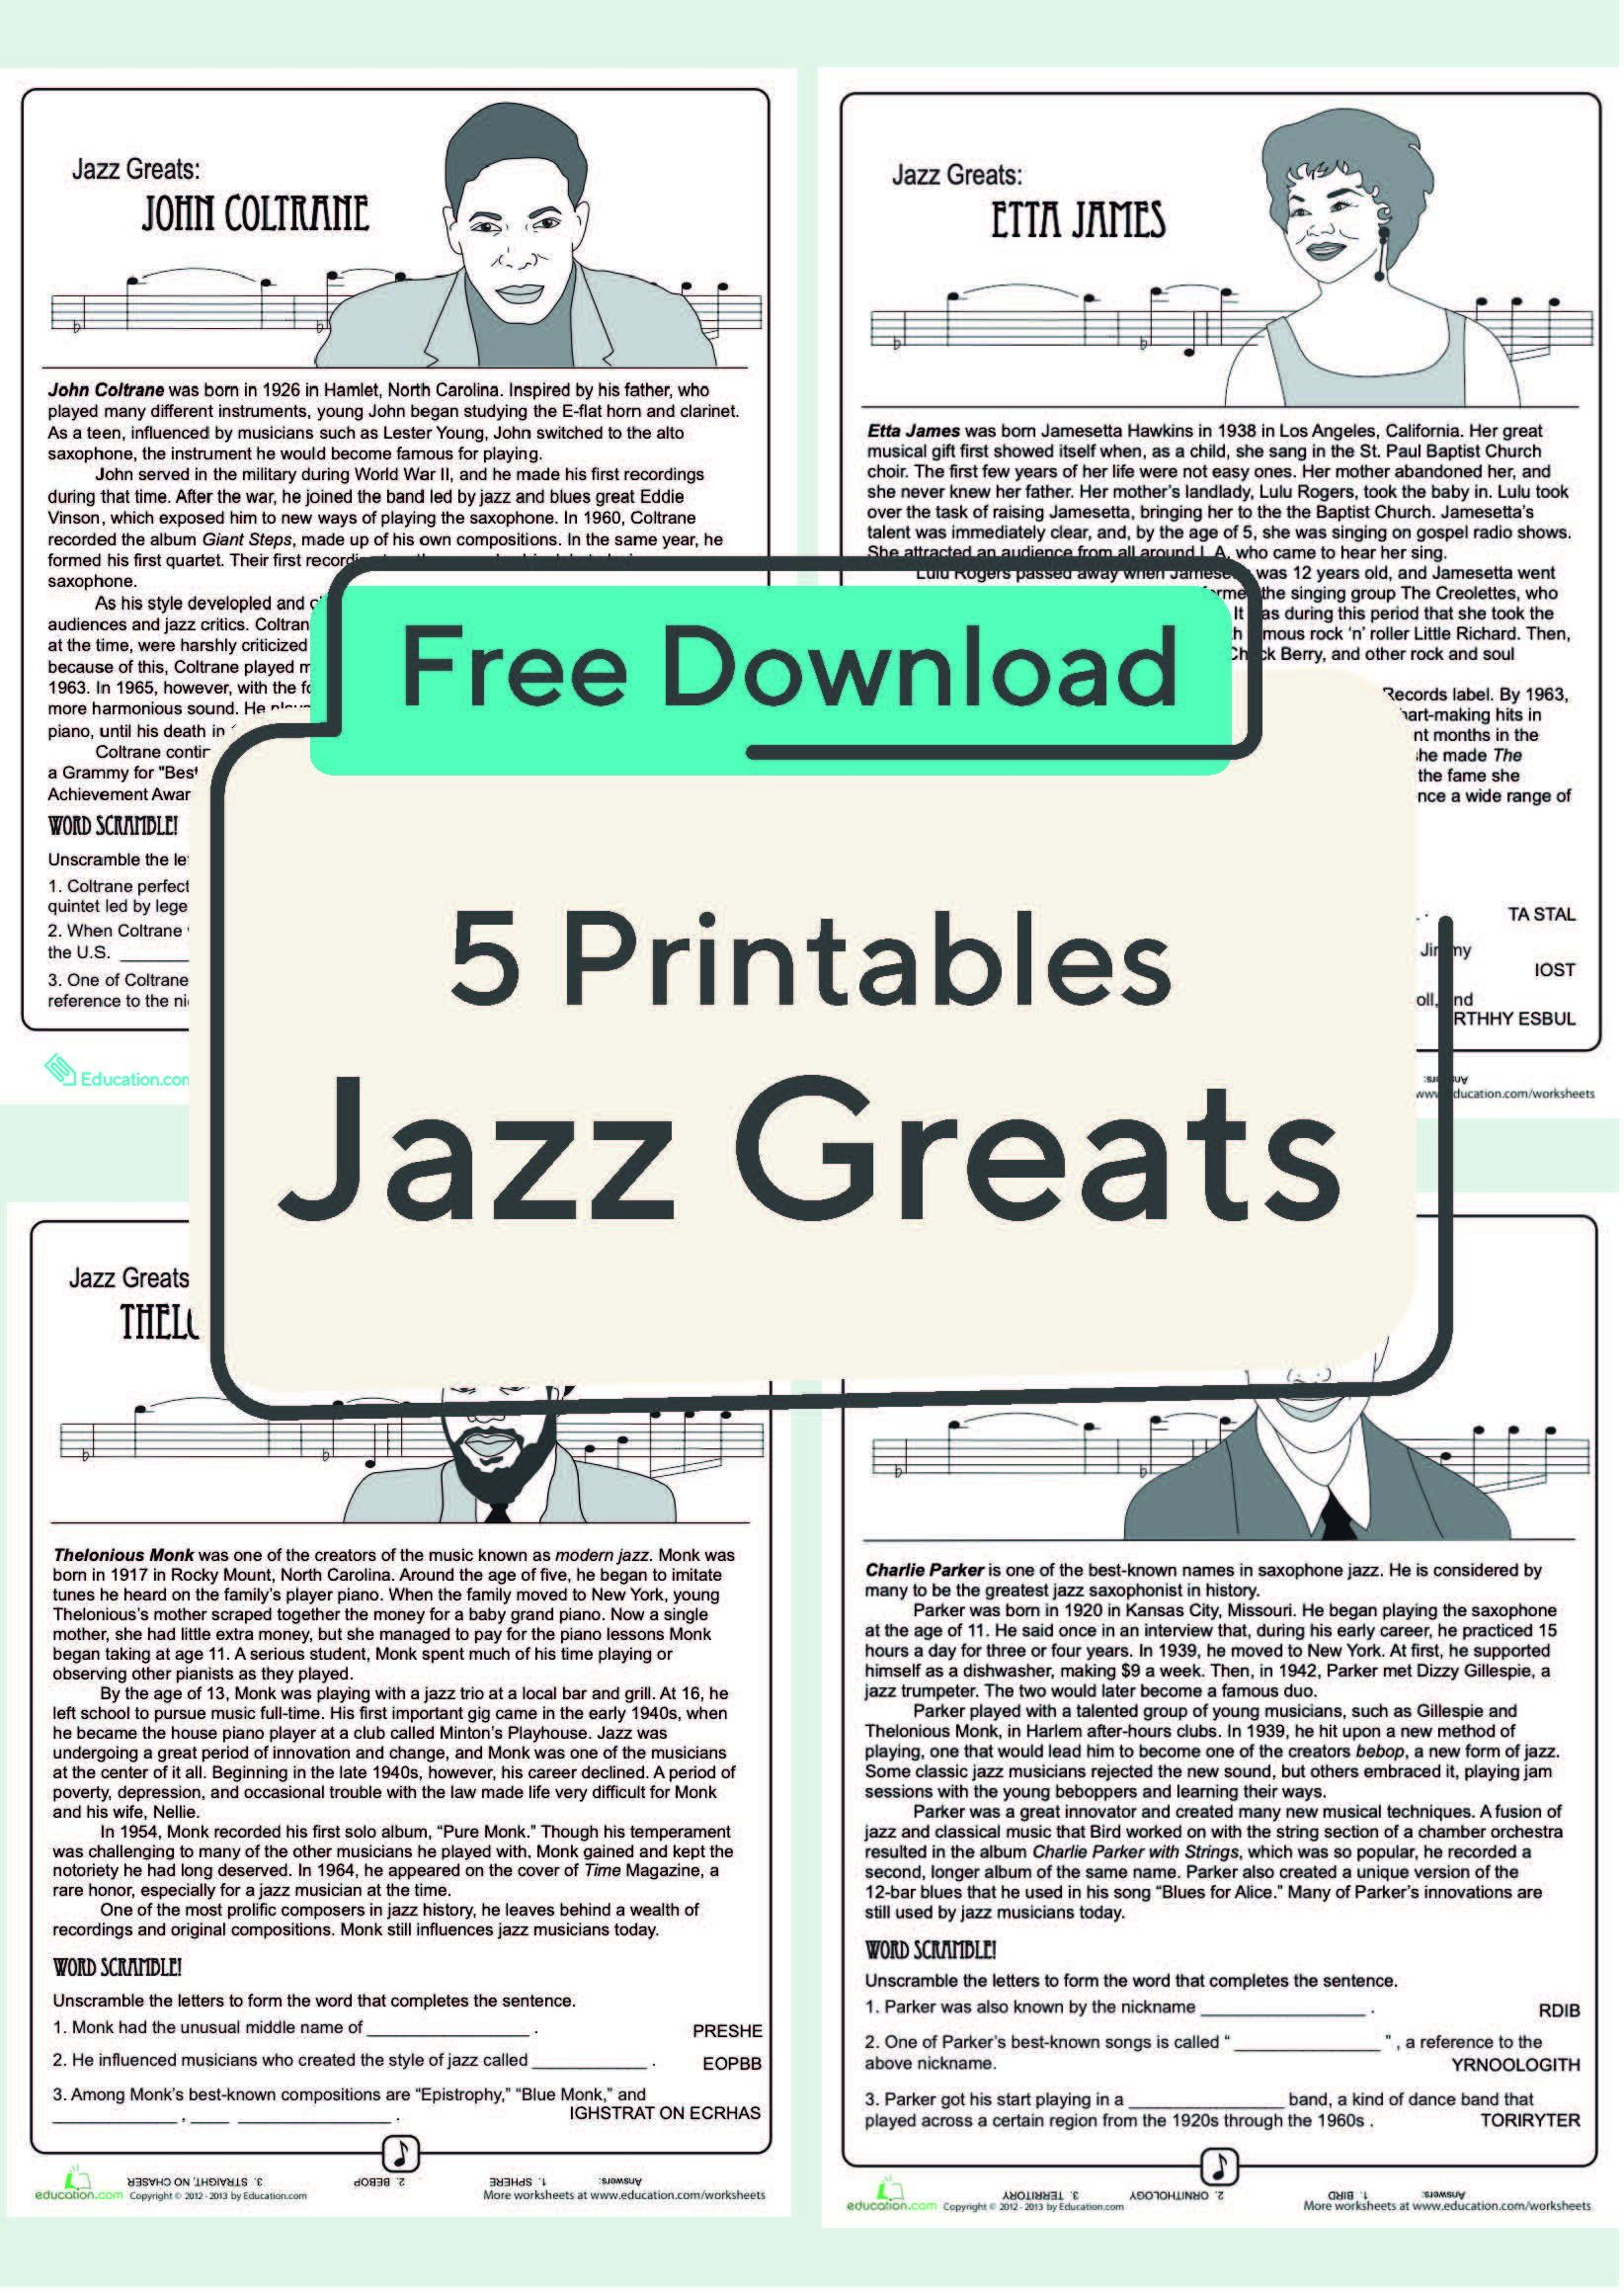 Teach Your Child About Famous Jazz Musicians With This